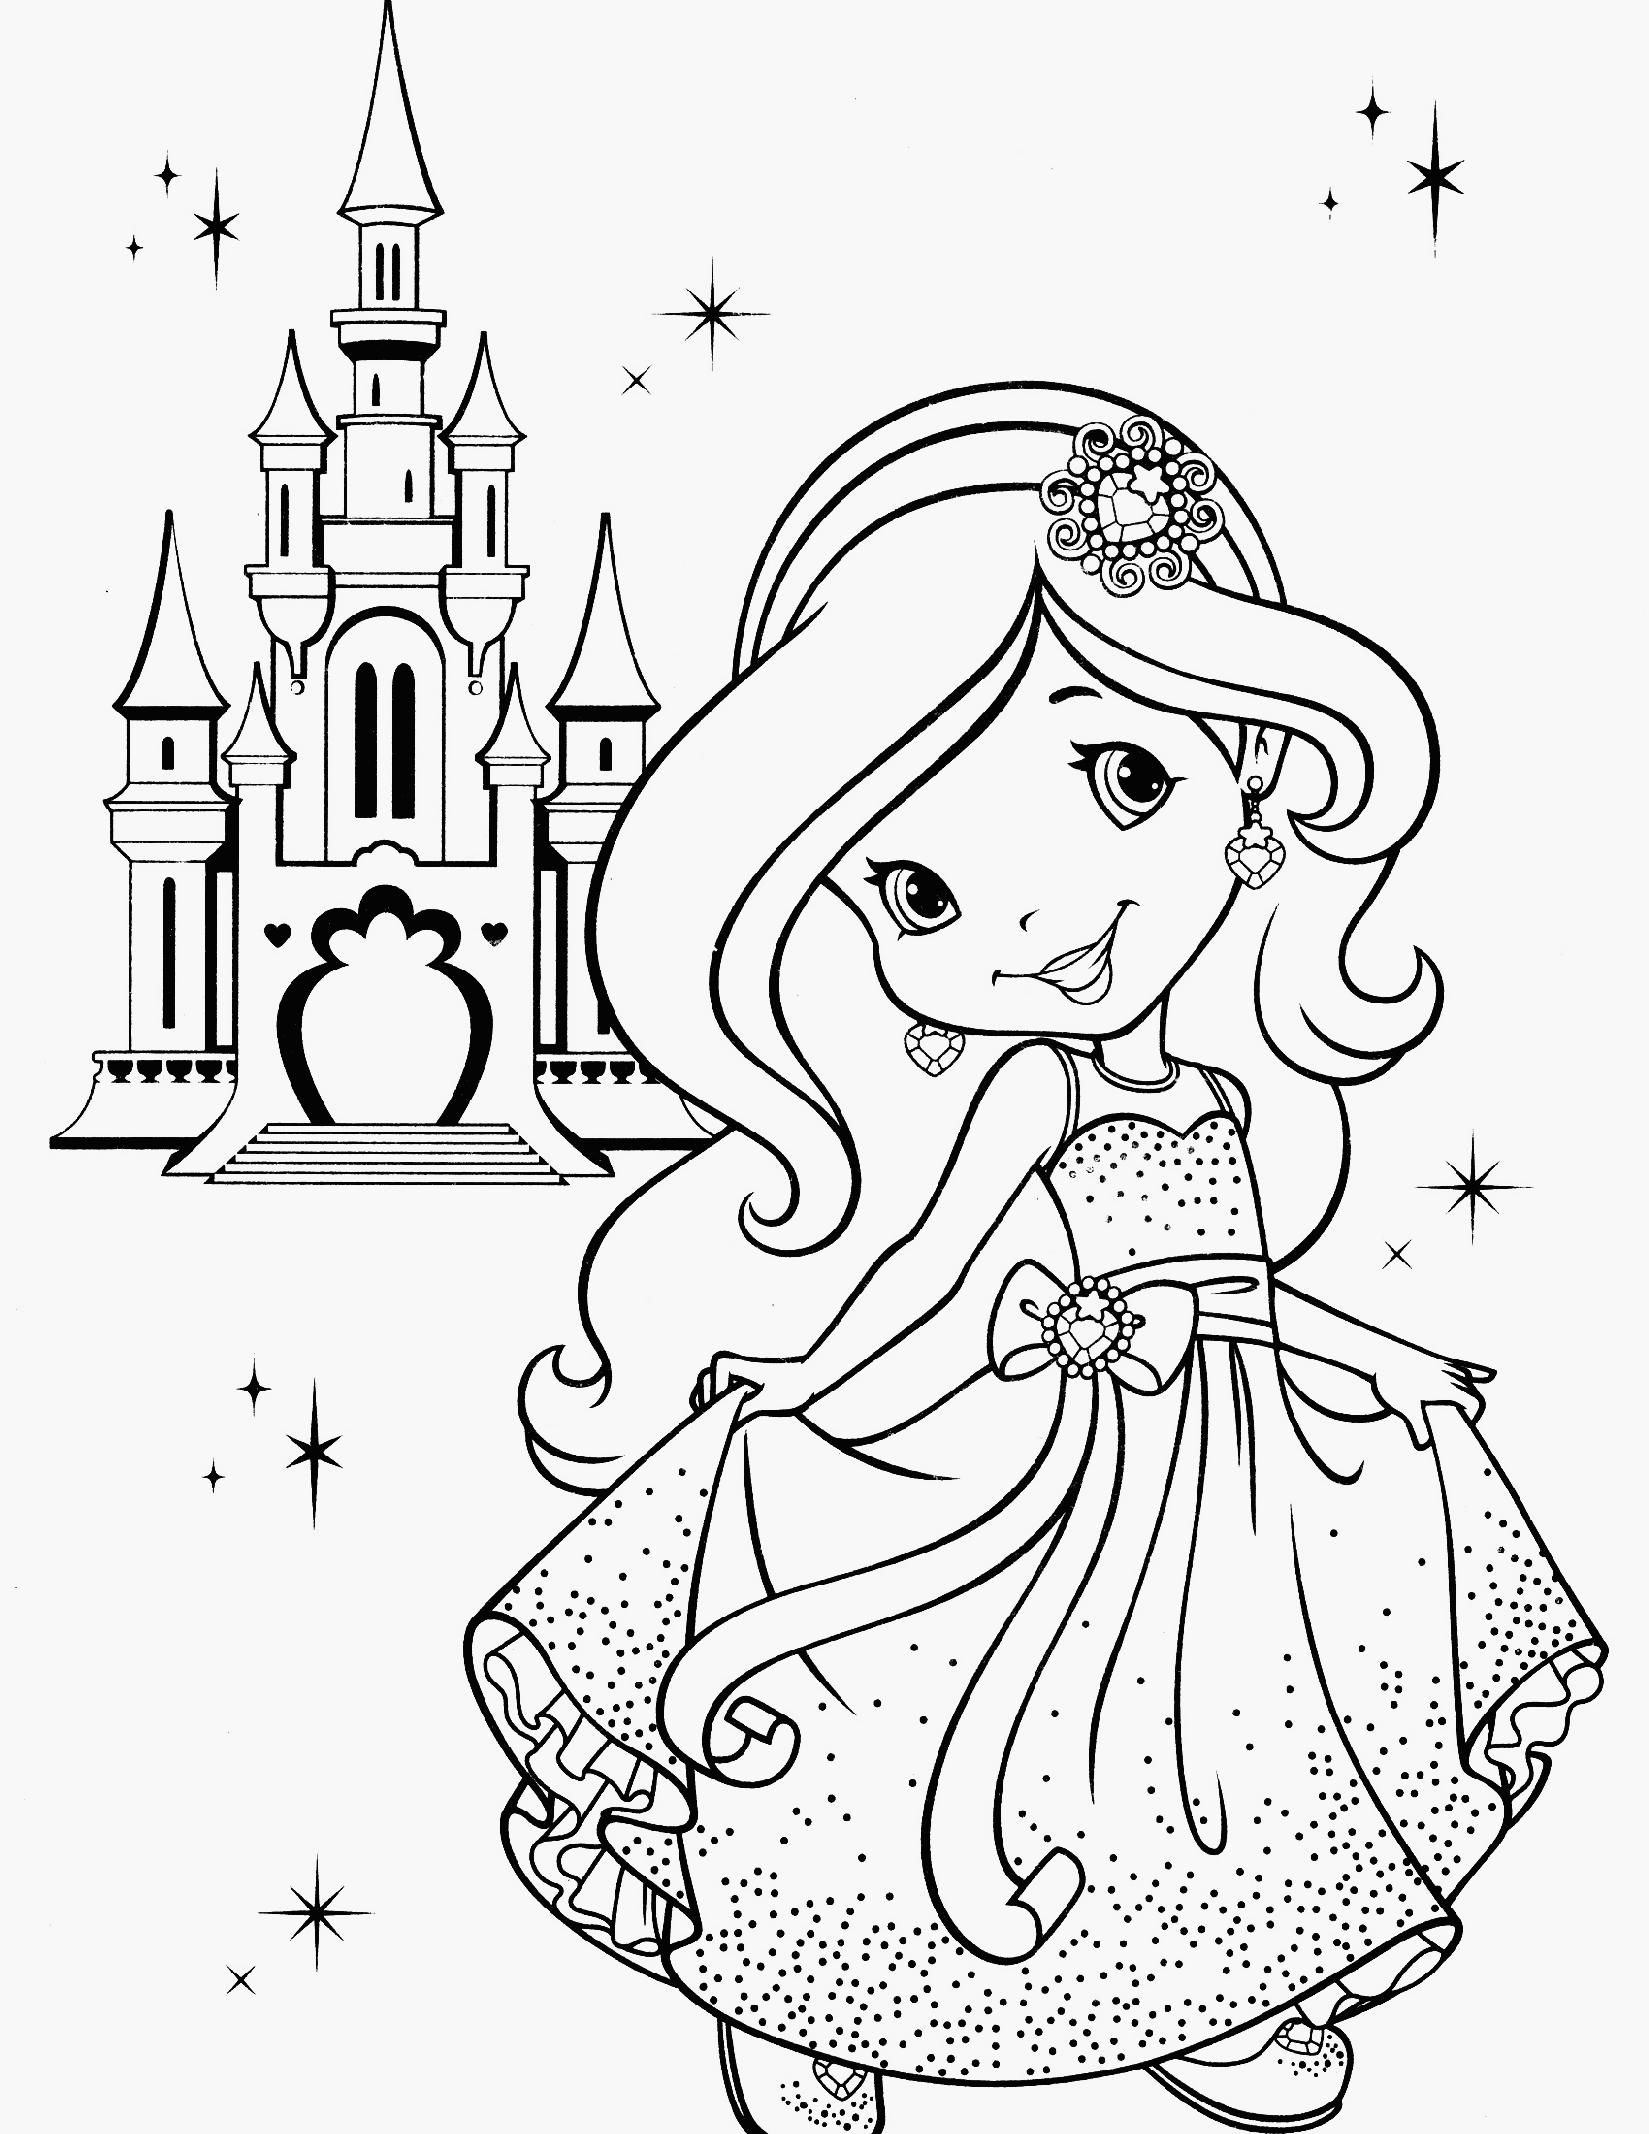 20+ Free Printable Strawberry Shortcake Coloring Pages ... | 2134x1649